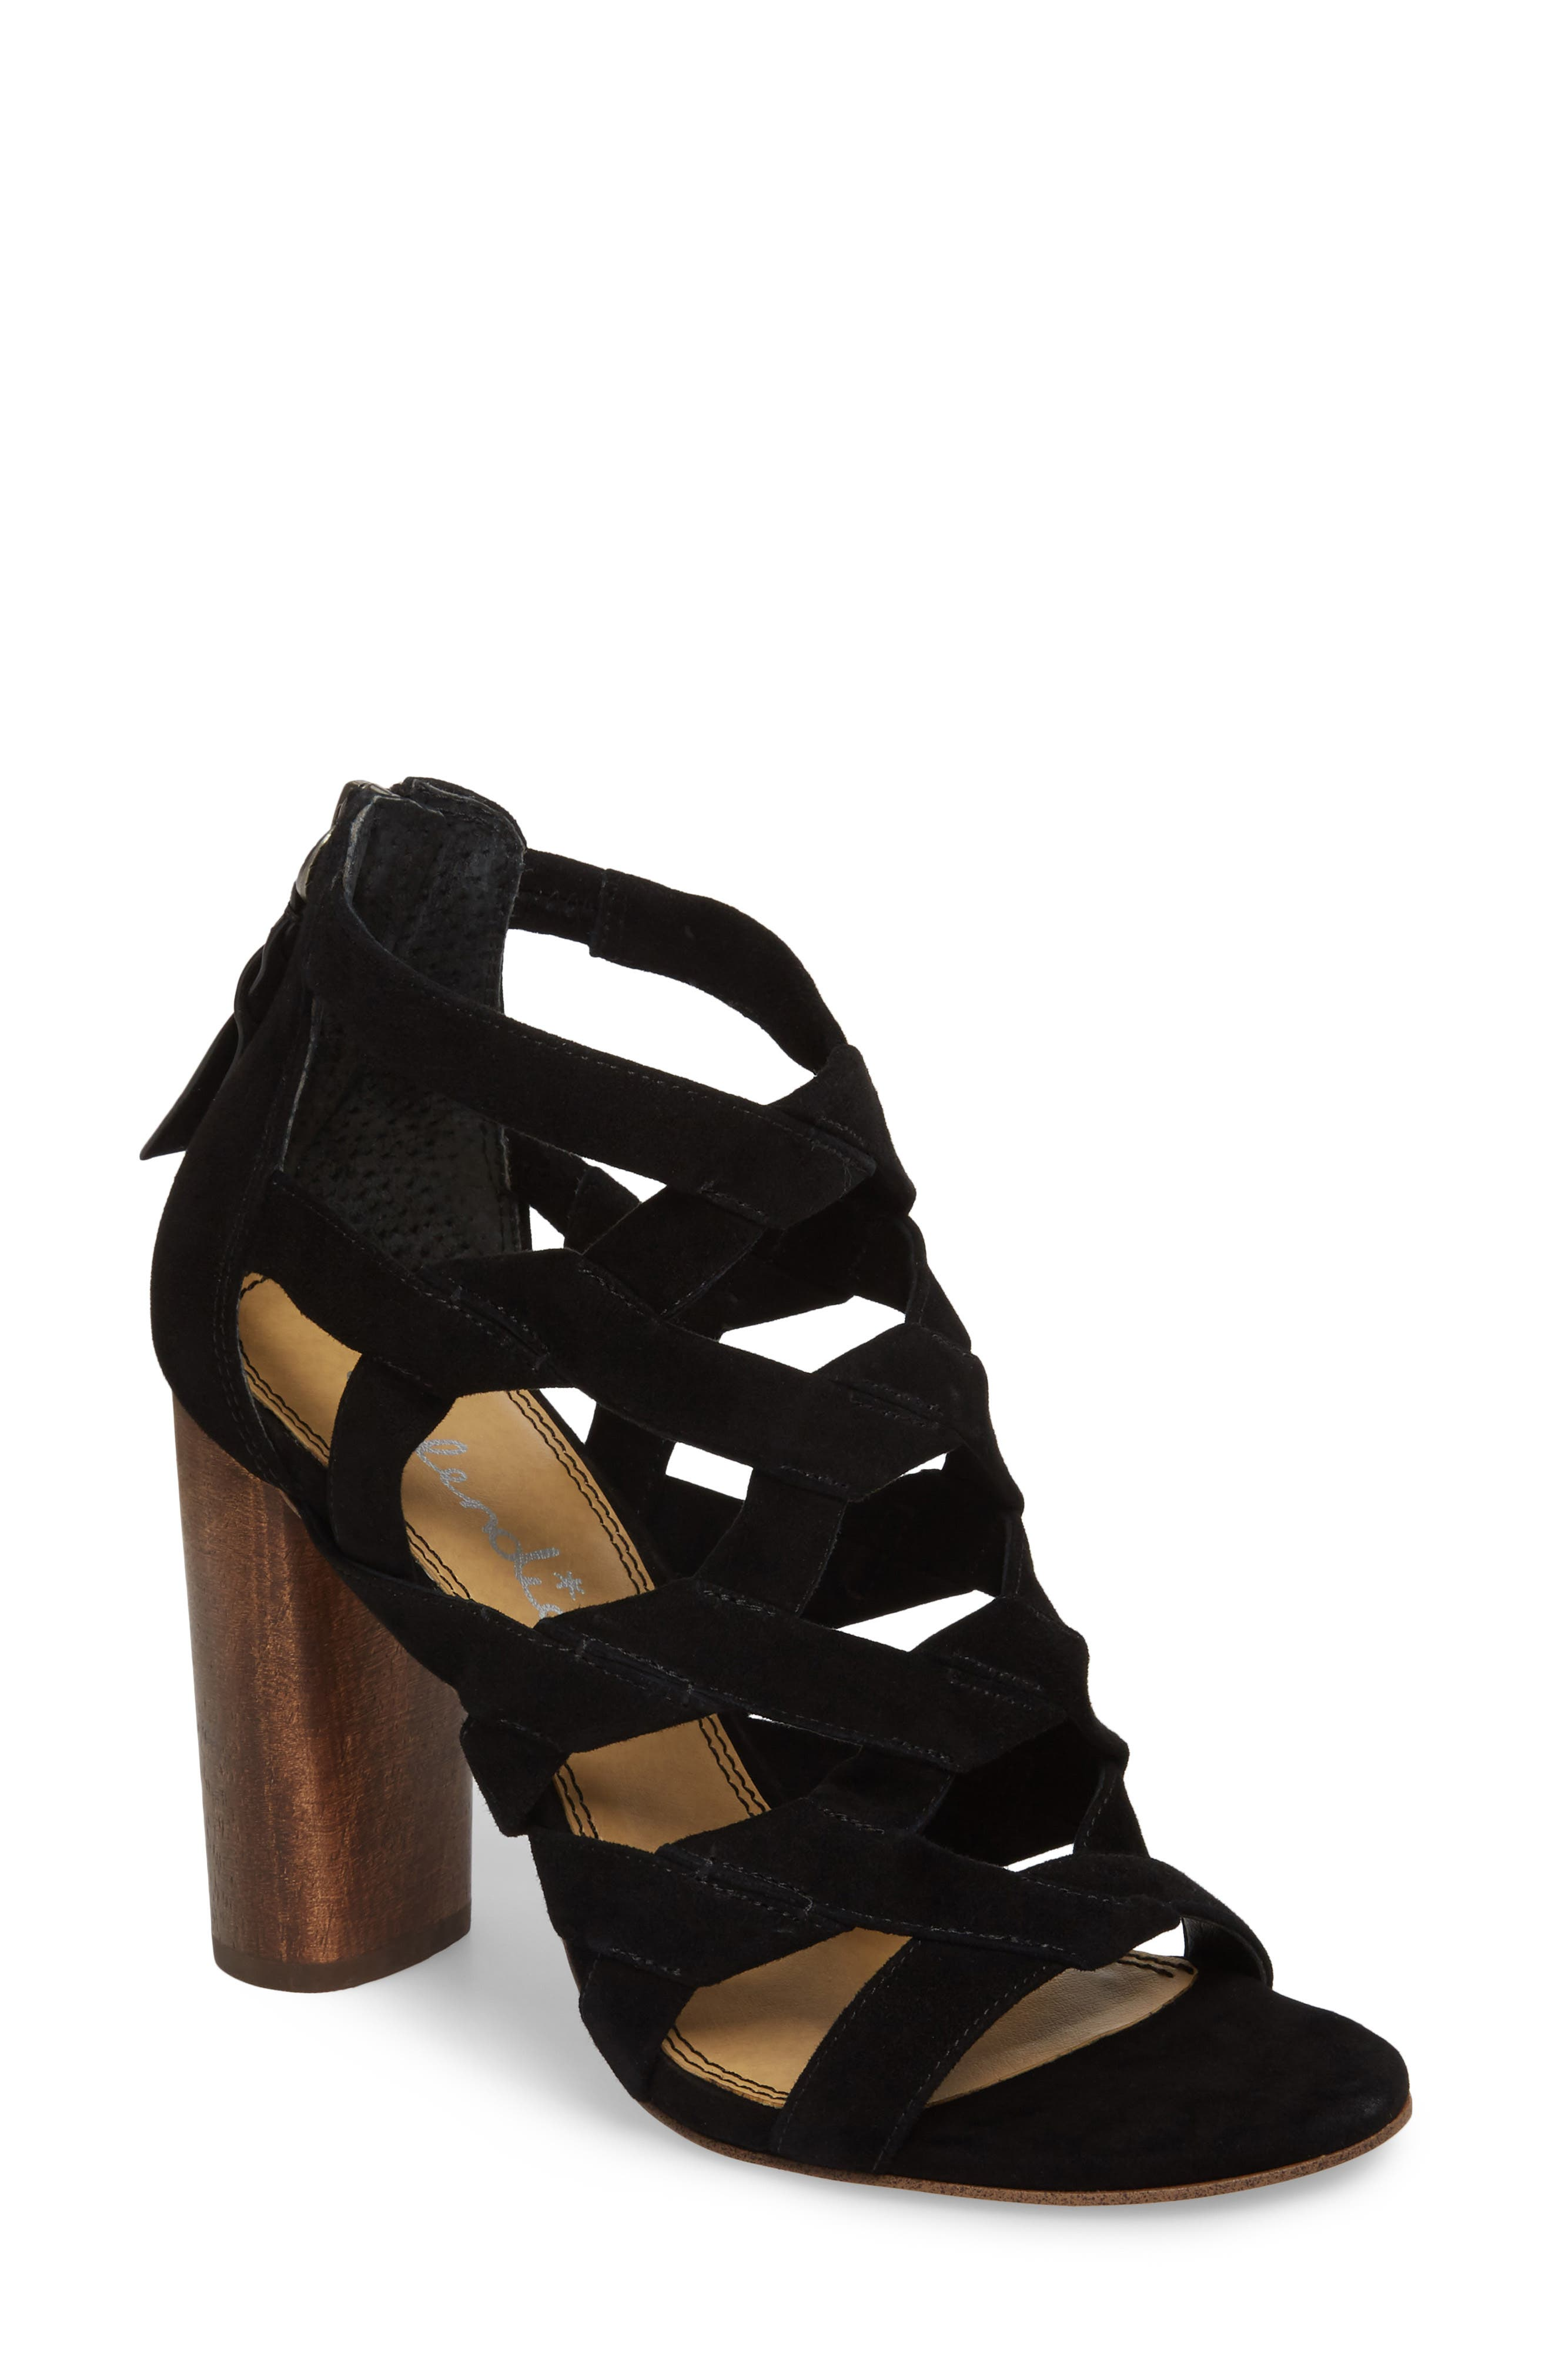 Bartlett Angled Cage Sandal,                         Main,                         color, 013